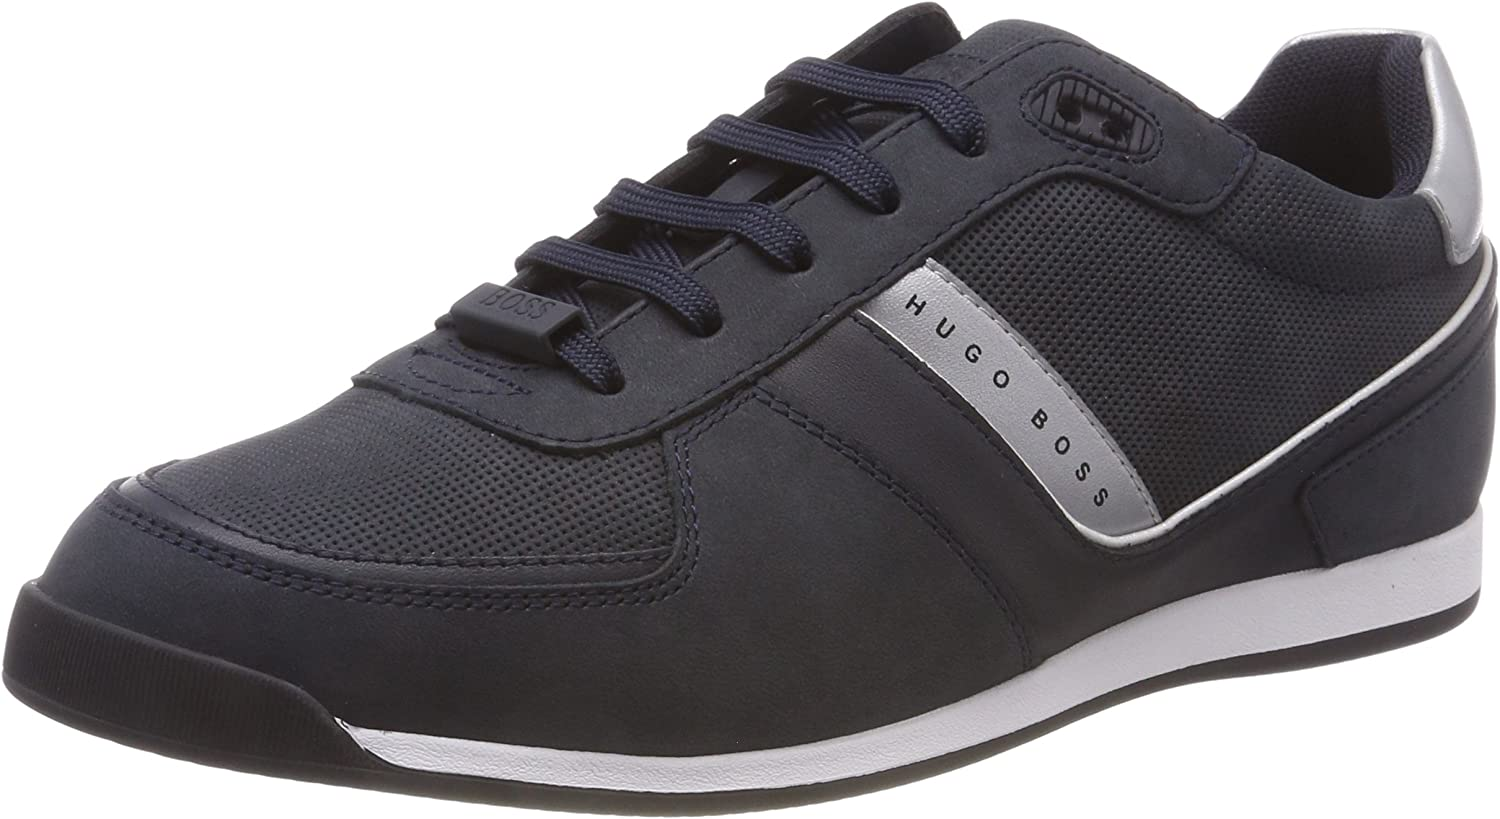 BOSS Men's Glaze_lowp_lux2 Low-Top Sneakers